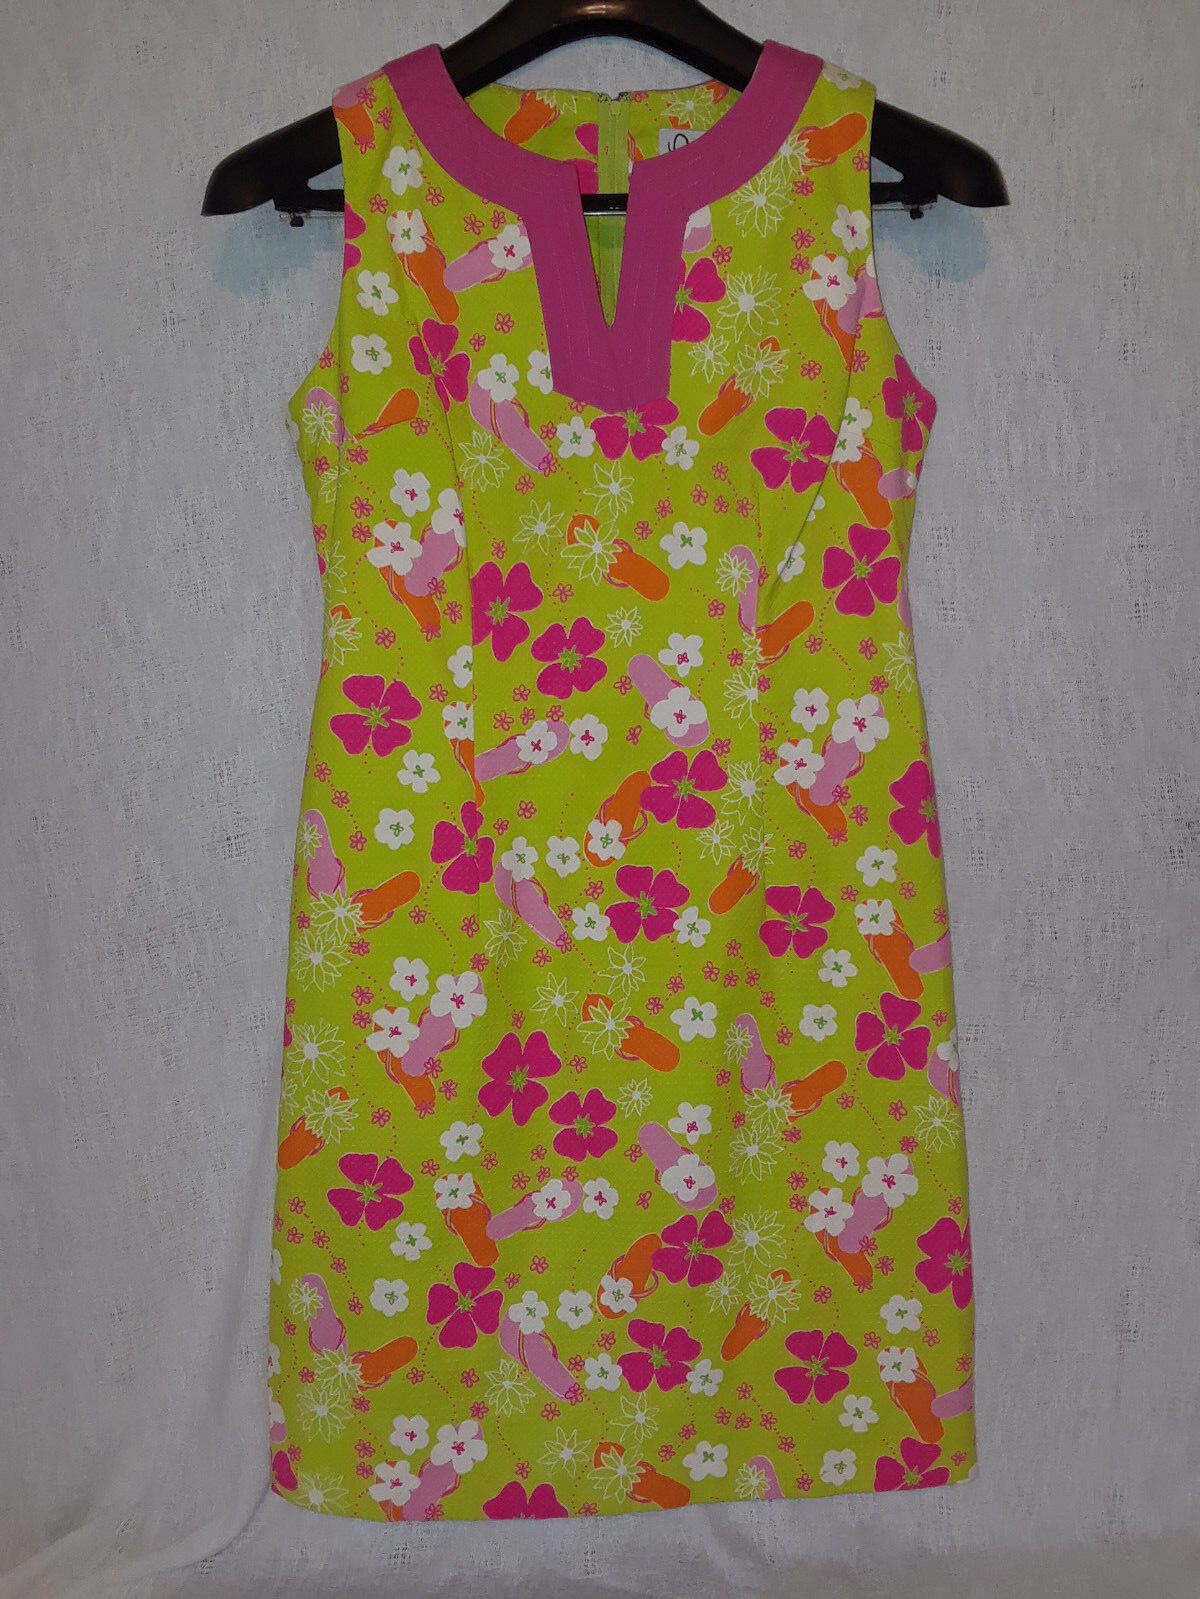 Lilly Pulitzer Bright Grün Rosa Split V Neck Flip Flop Flower Shift Dress Sz 6